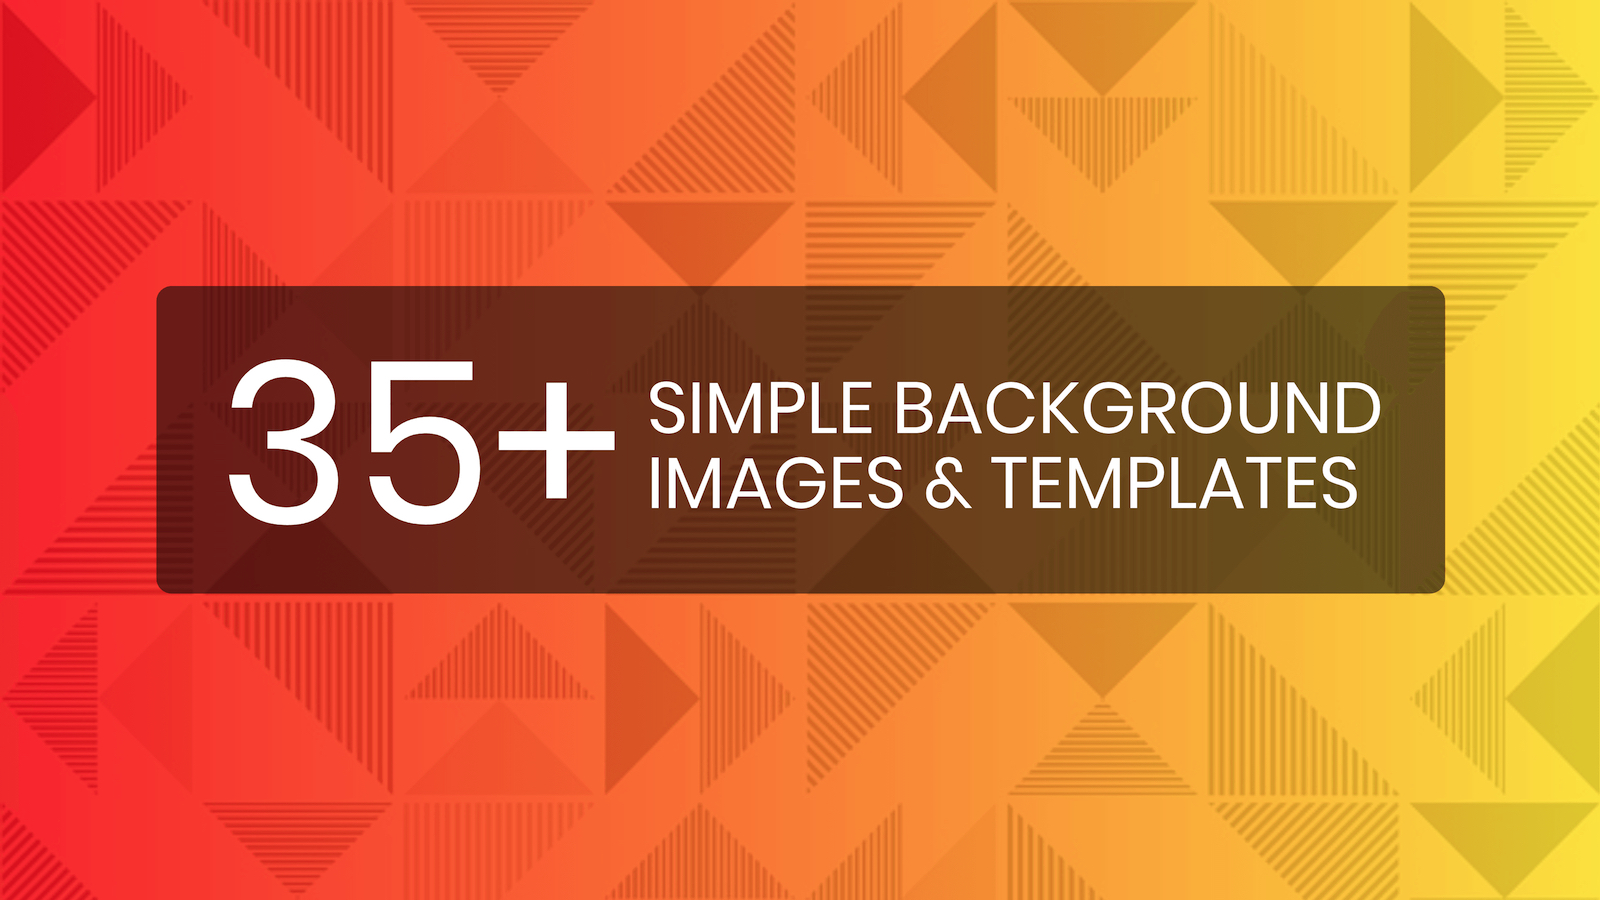 35 Simple Background Images Templates  Design Tips